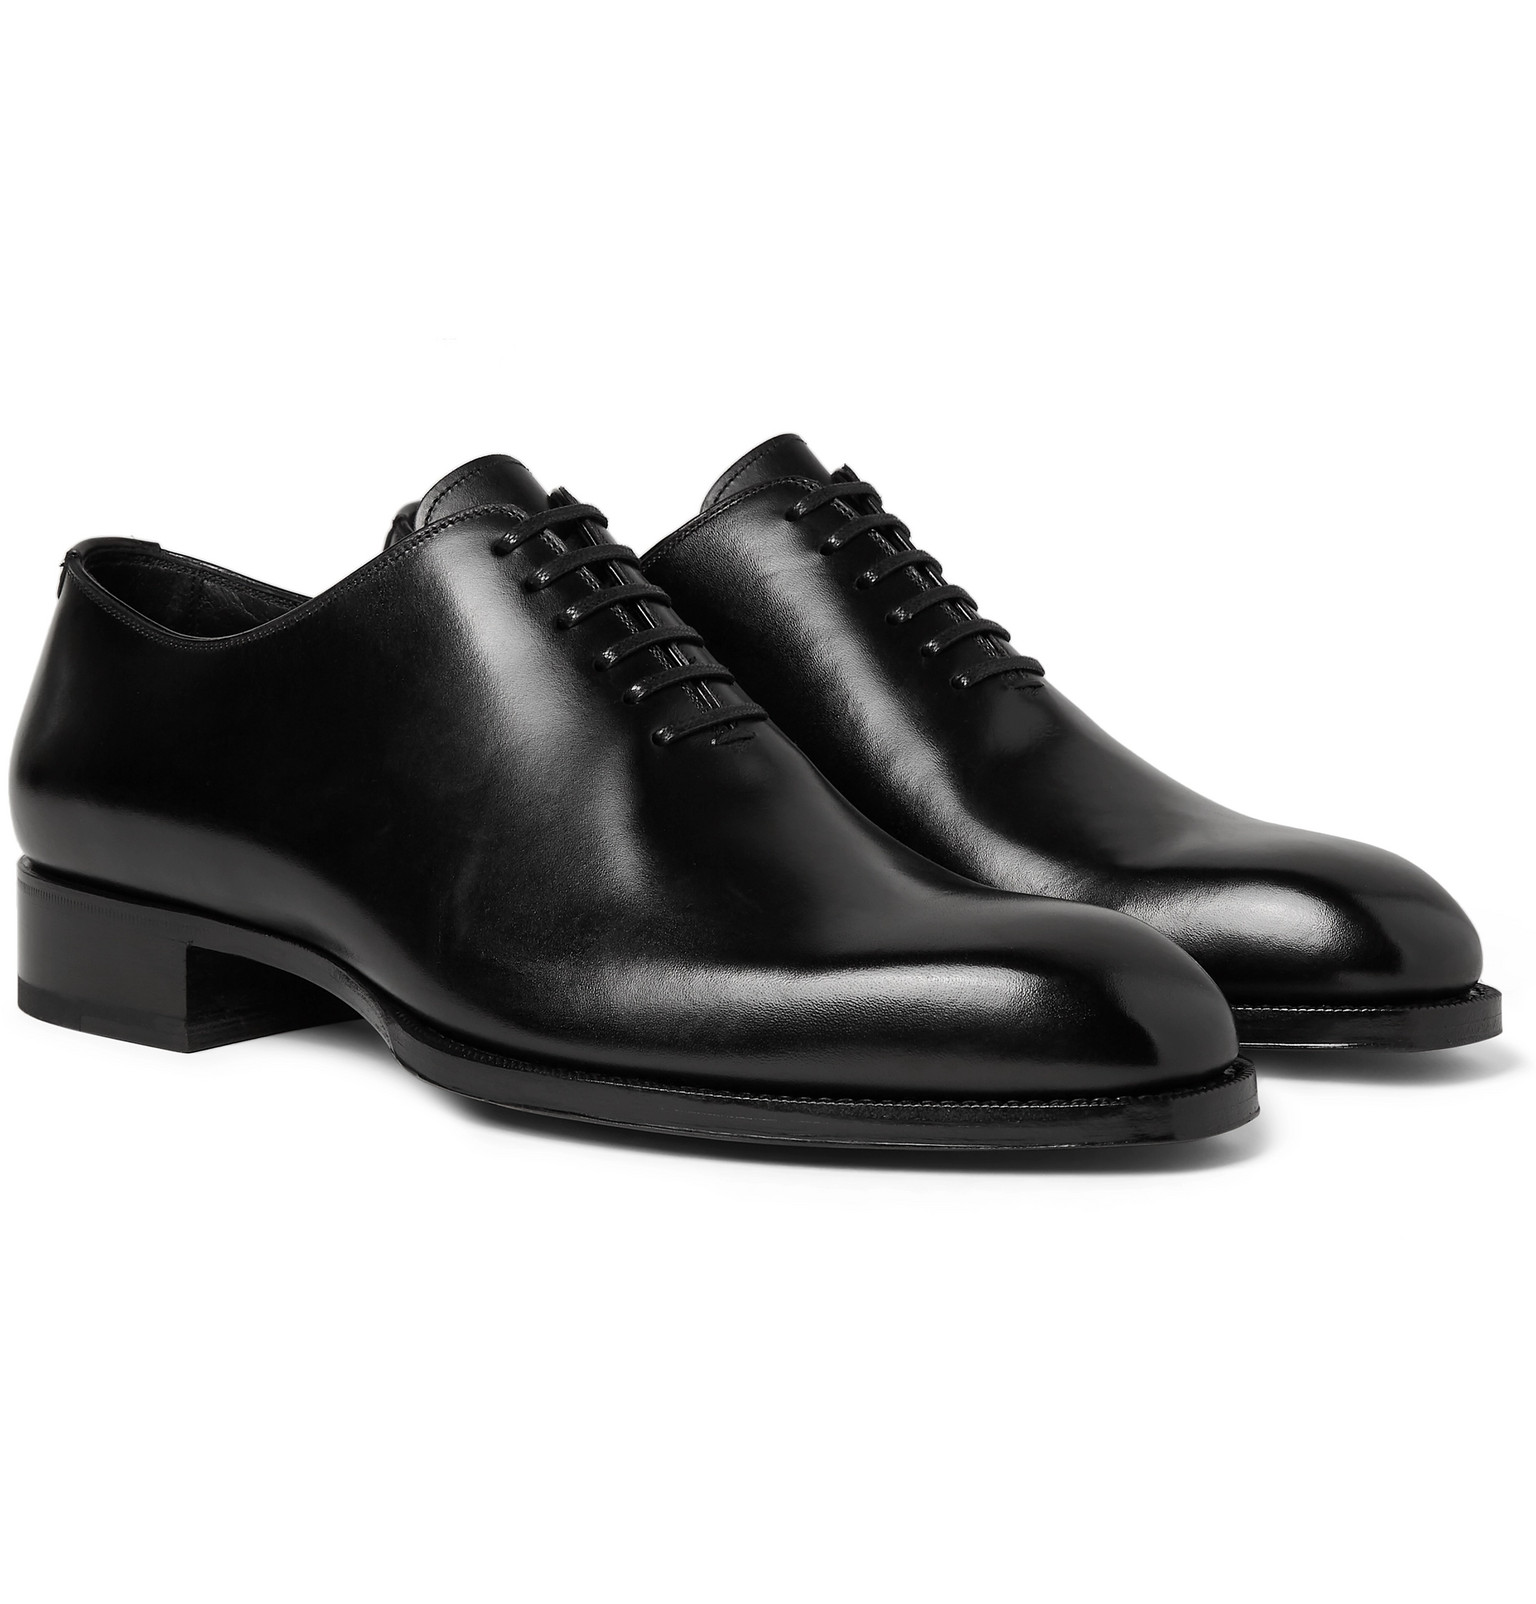 Elkan Whole-Cut Polished-Leather Oxford